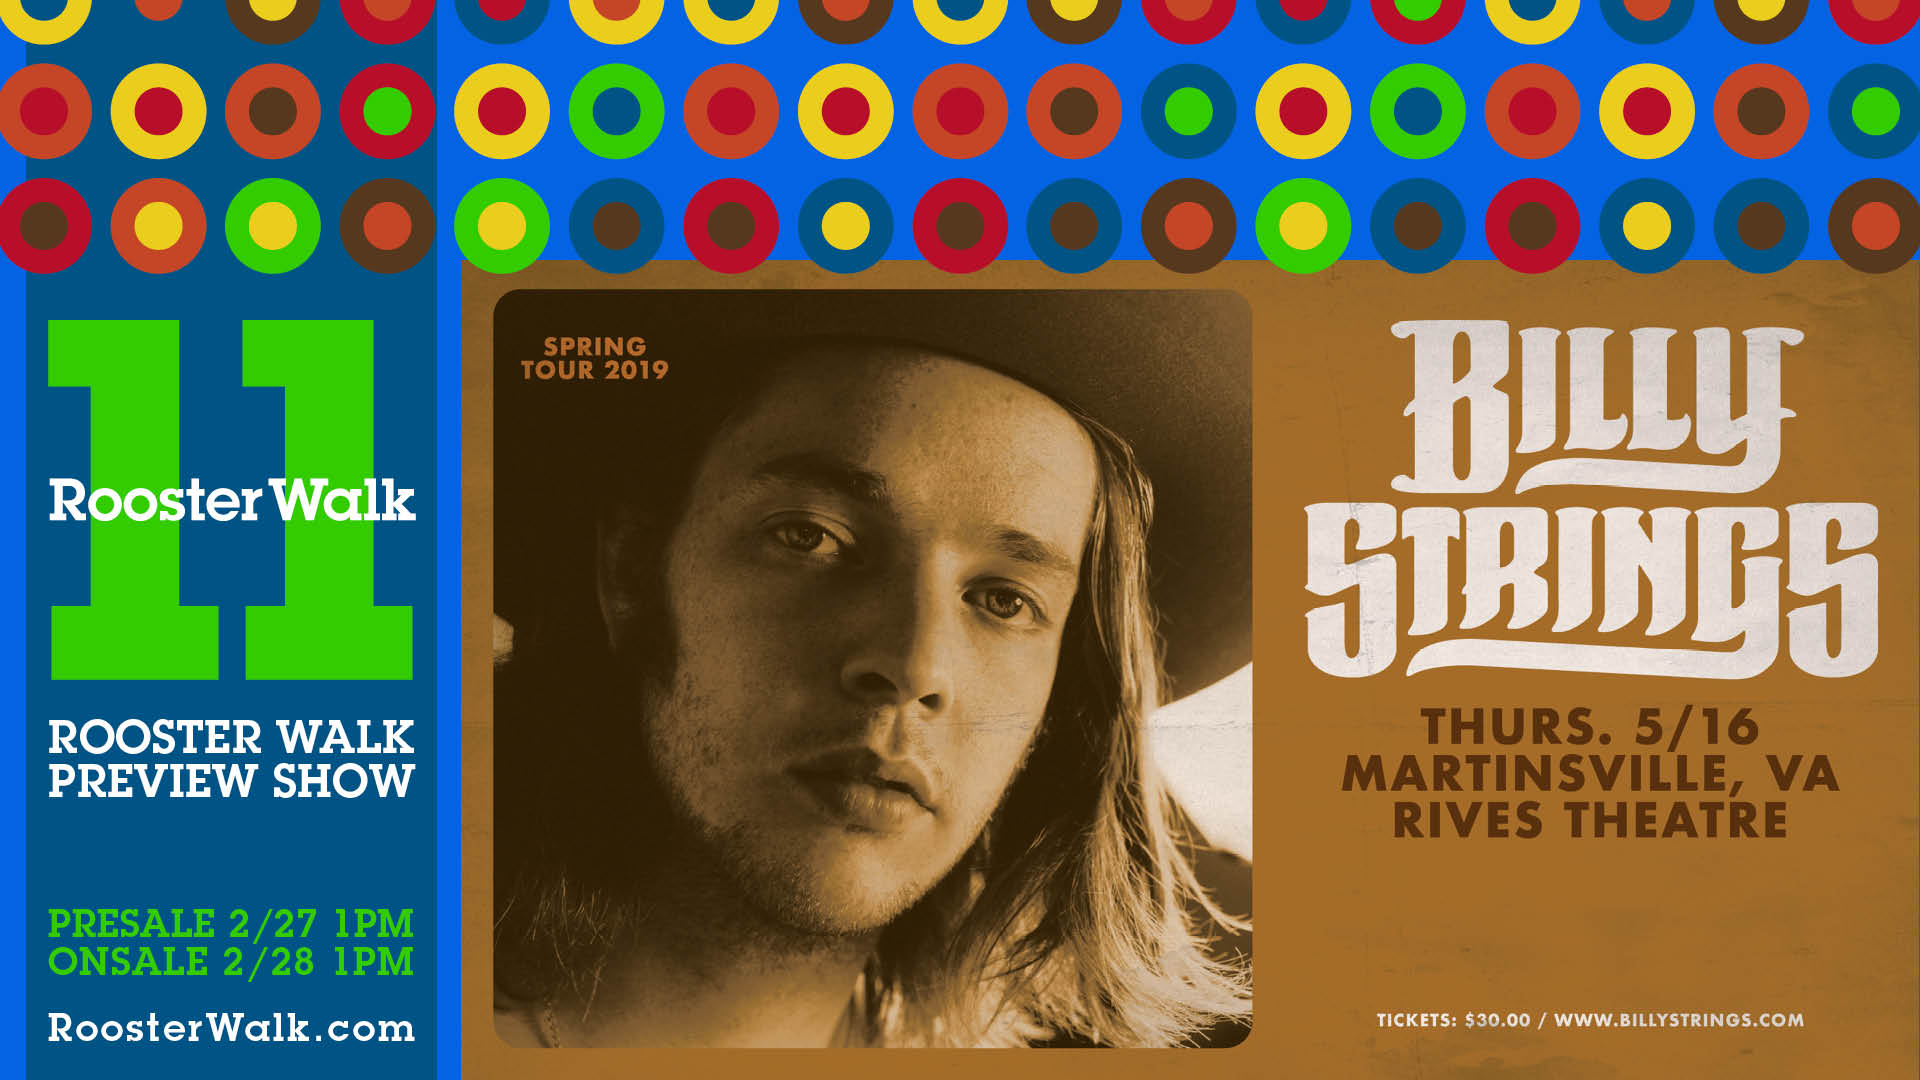 Photo of SOLD OUT - Billy Strings - May 16 - Rives